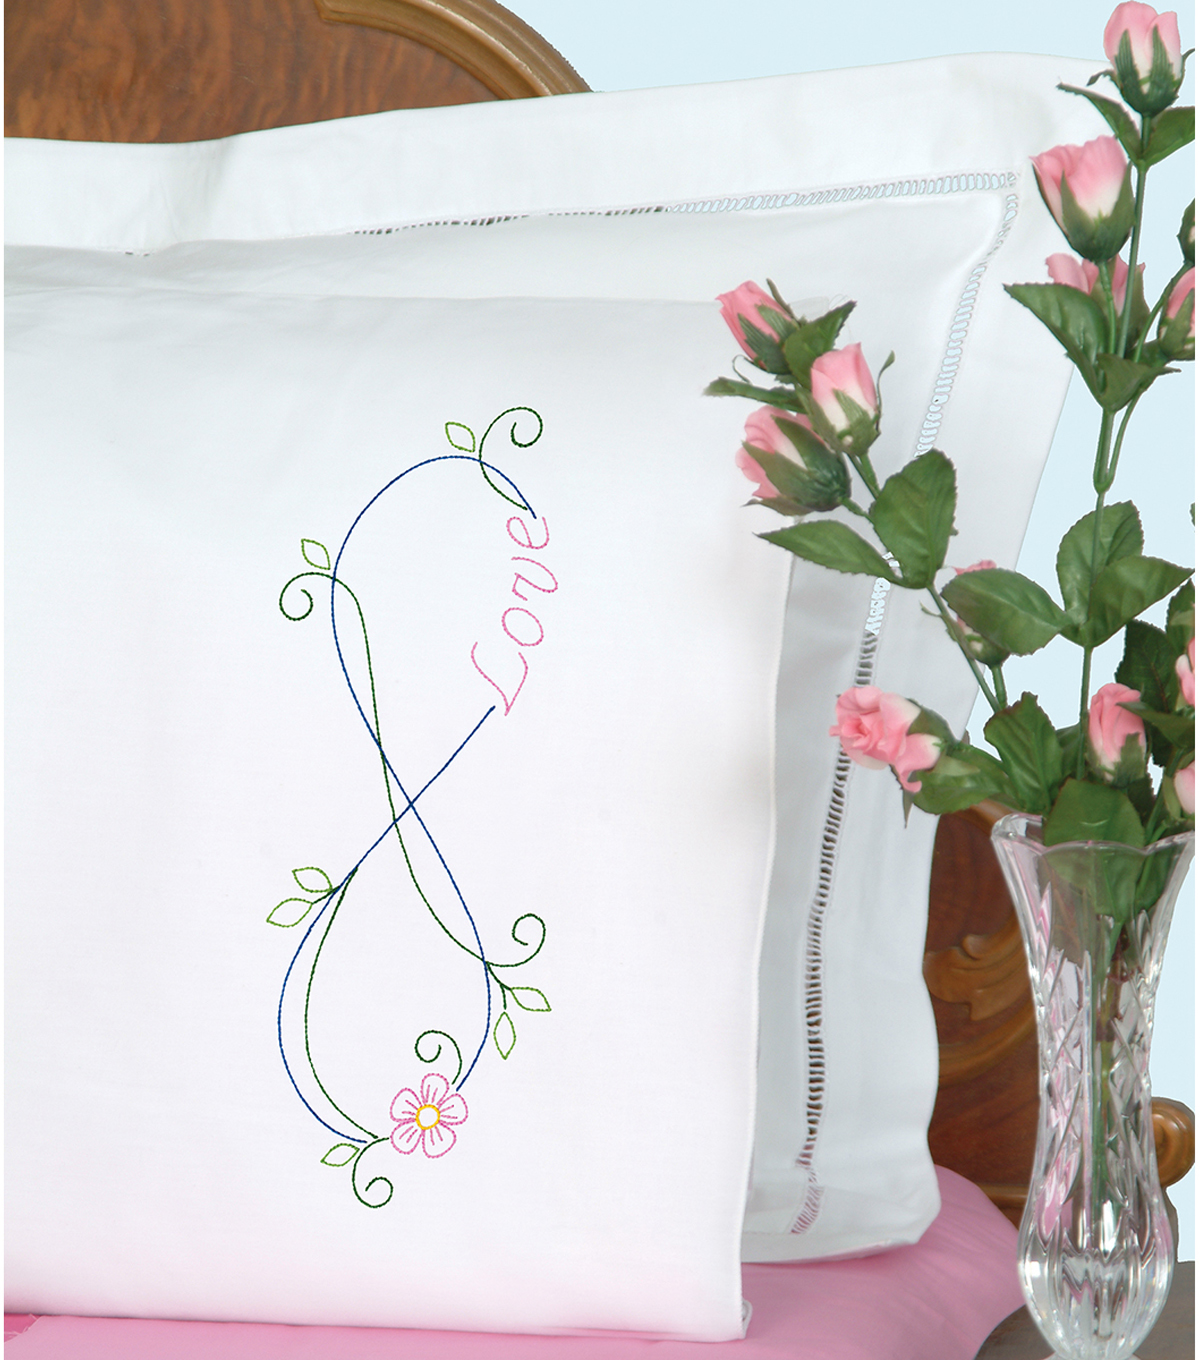 Jack Dempsey Needle Art 2 pk Stamped Perle Edge Pillowcases-Infinity